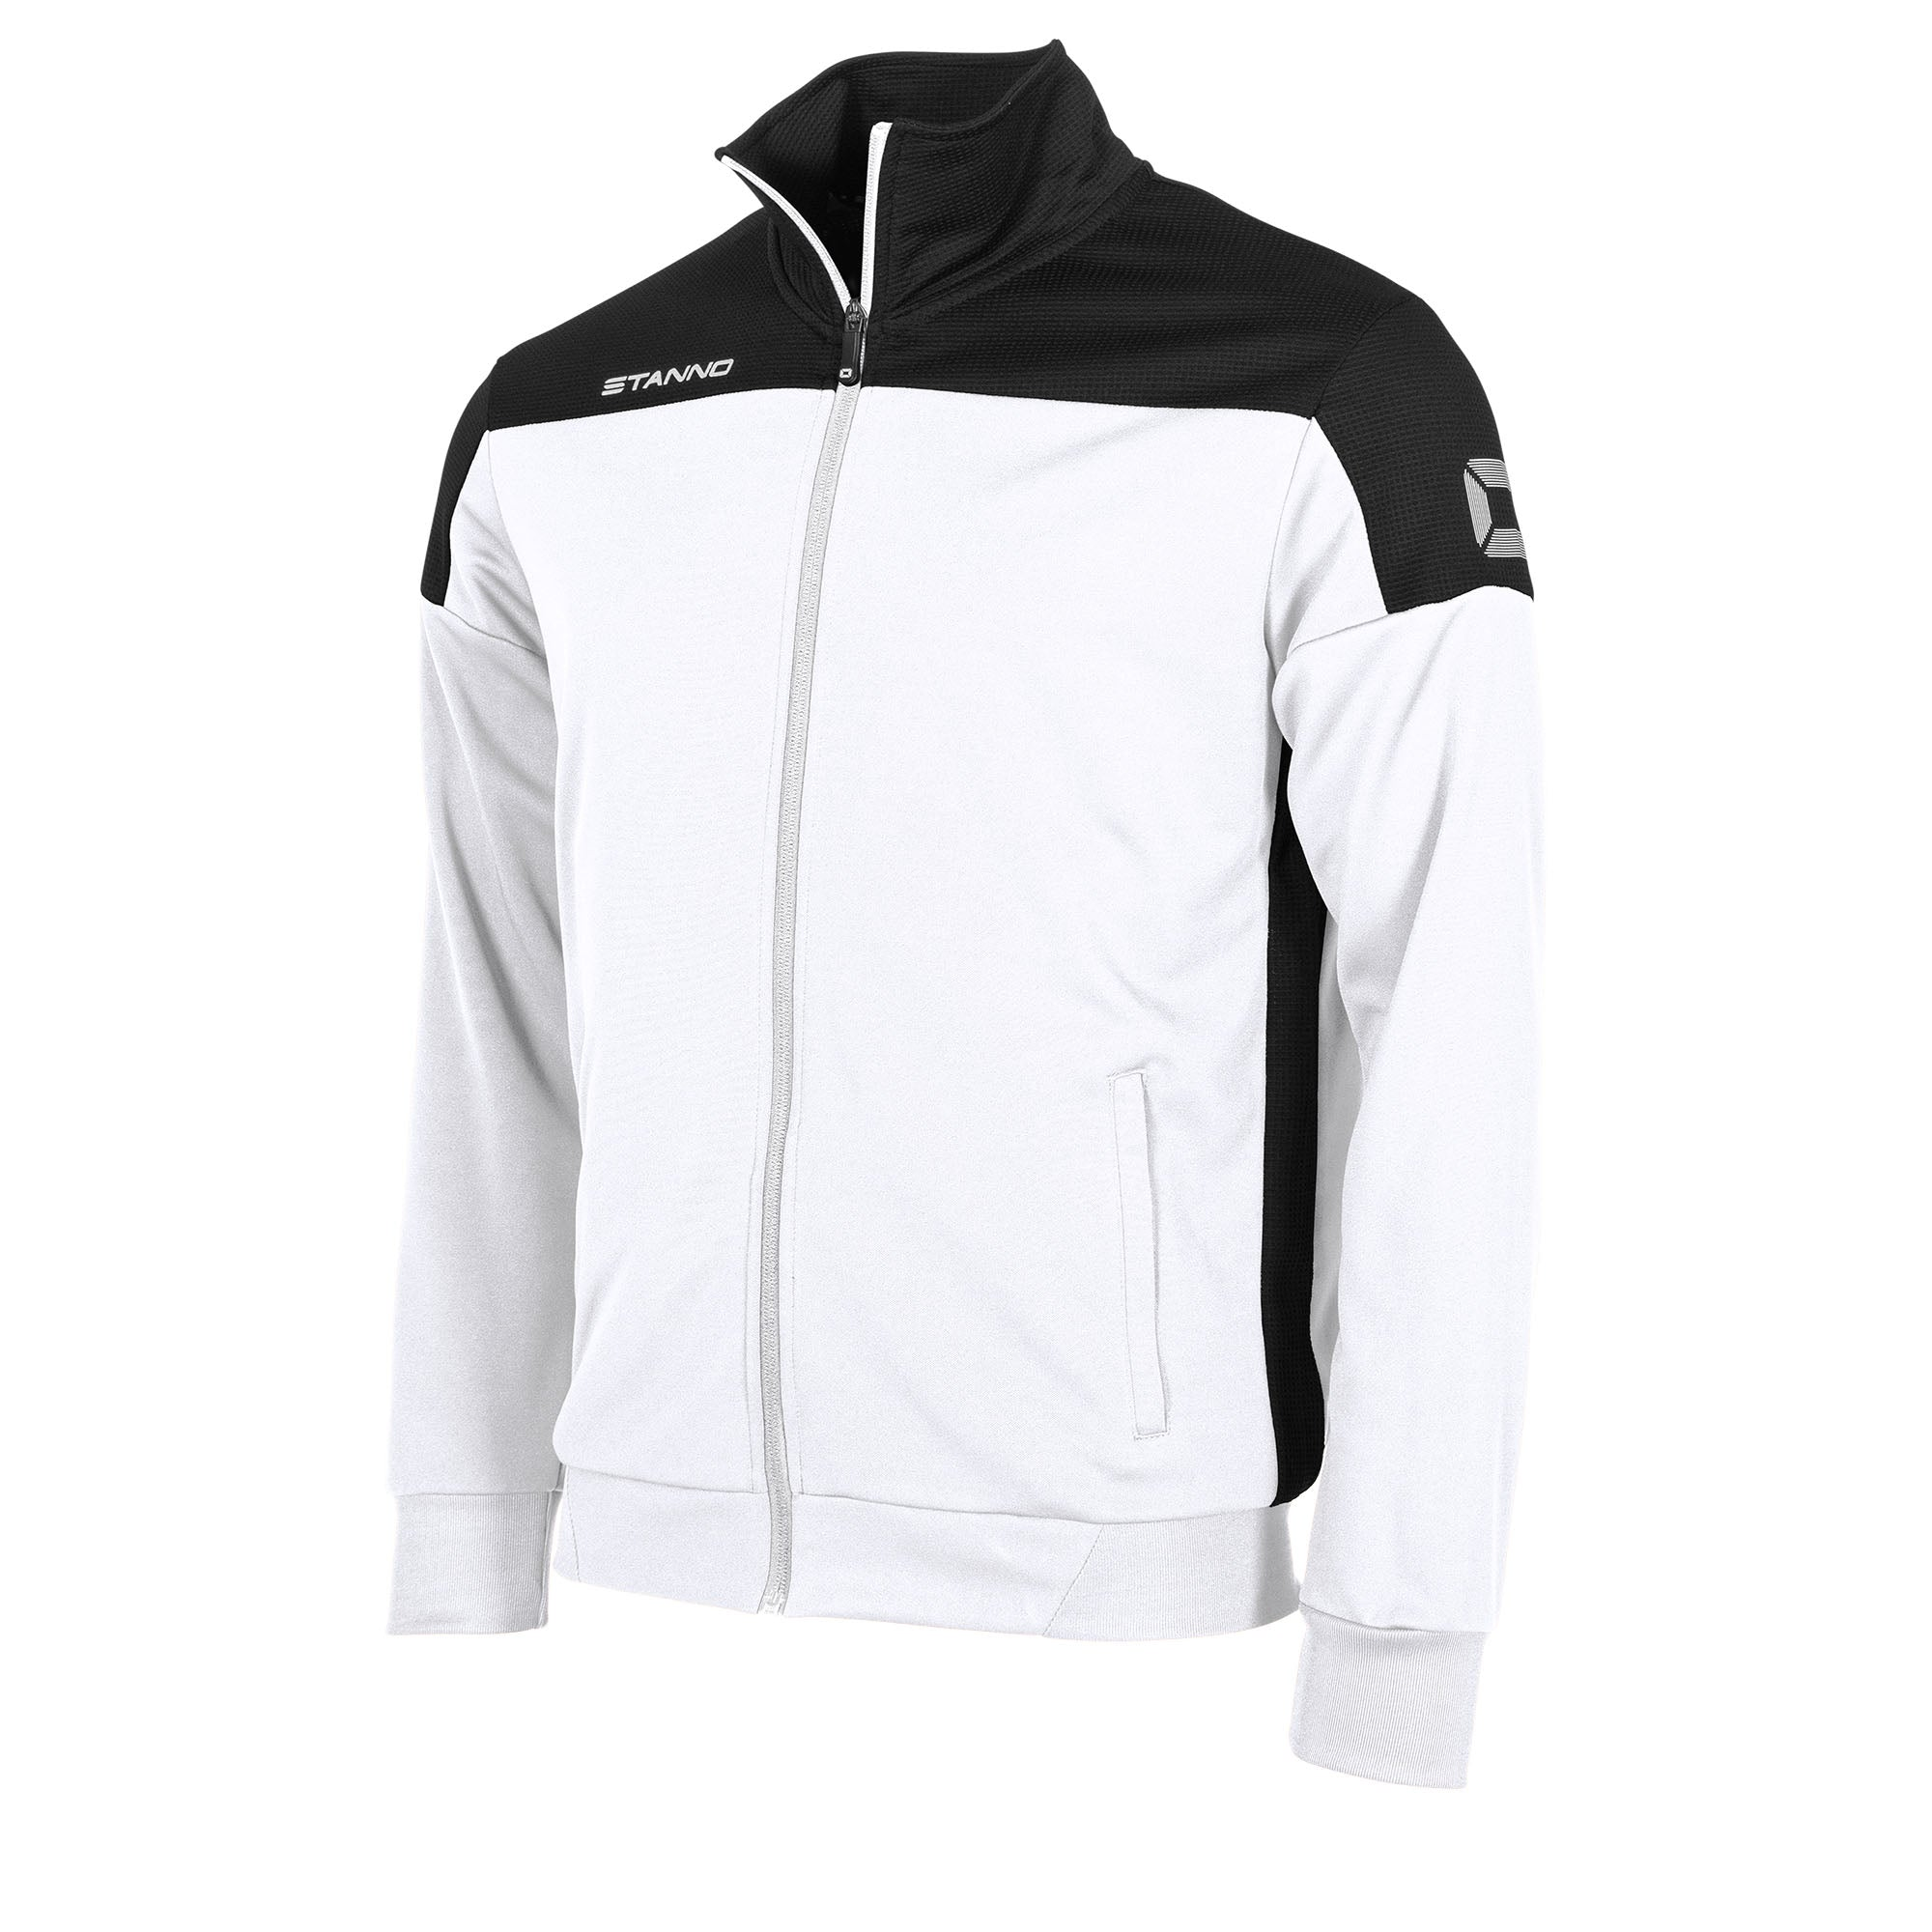 Stanno Pride TTS Jacket full zip in white with black contrast shoulders and side panel